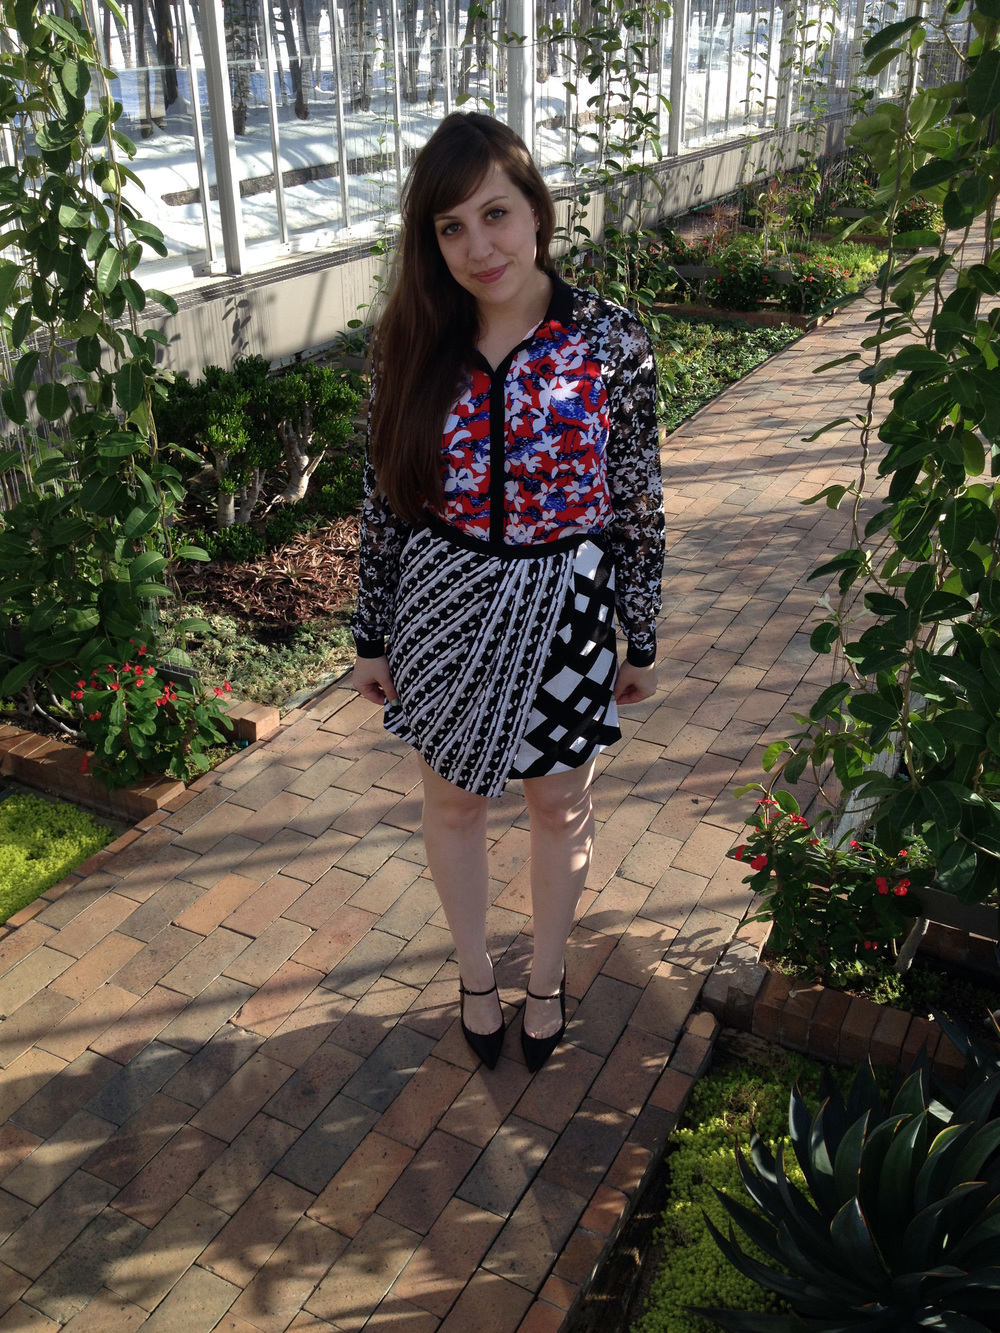 Peter Pilotto for Target Red Floral Blouse - $34.99 Peter Pilotto for Target Geo Print Skirt - $34.99